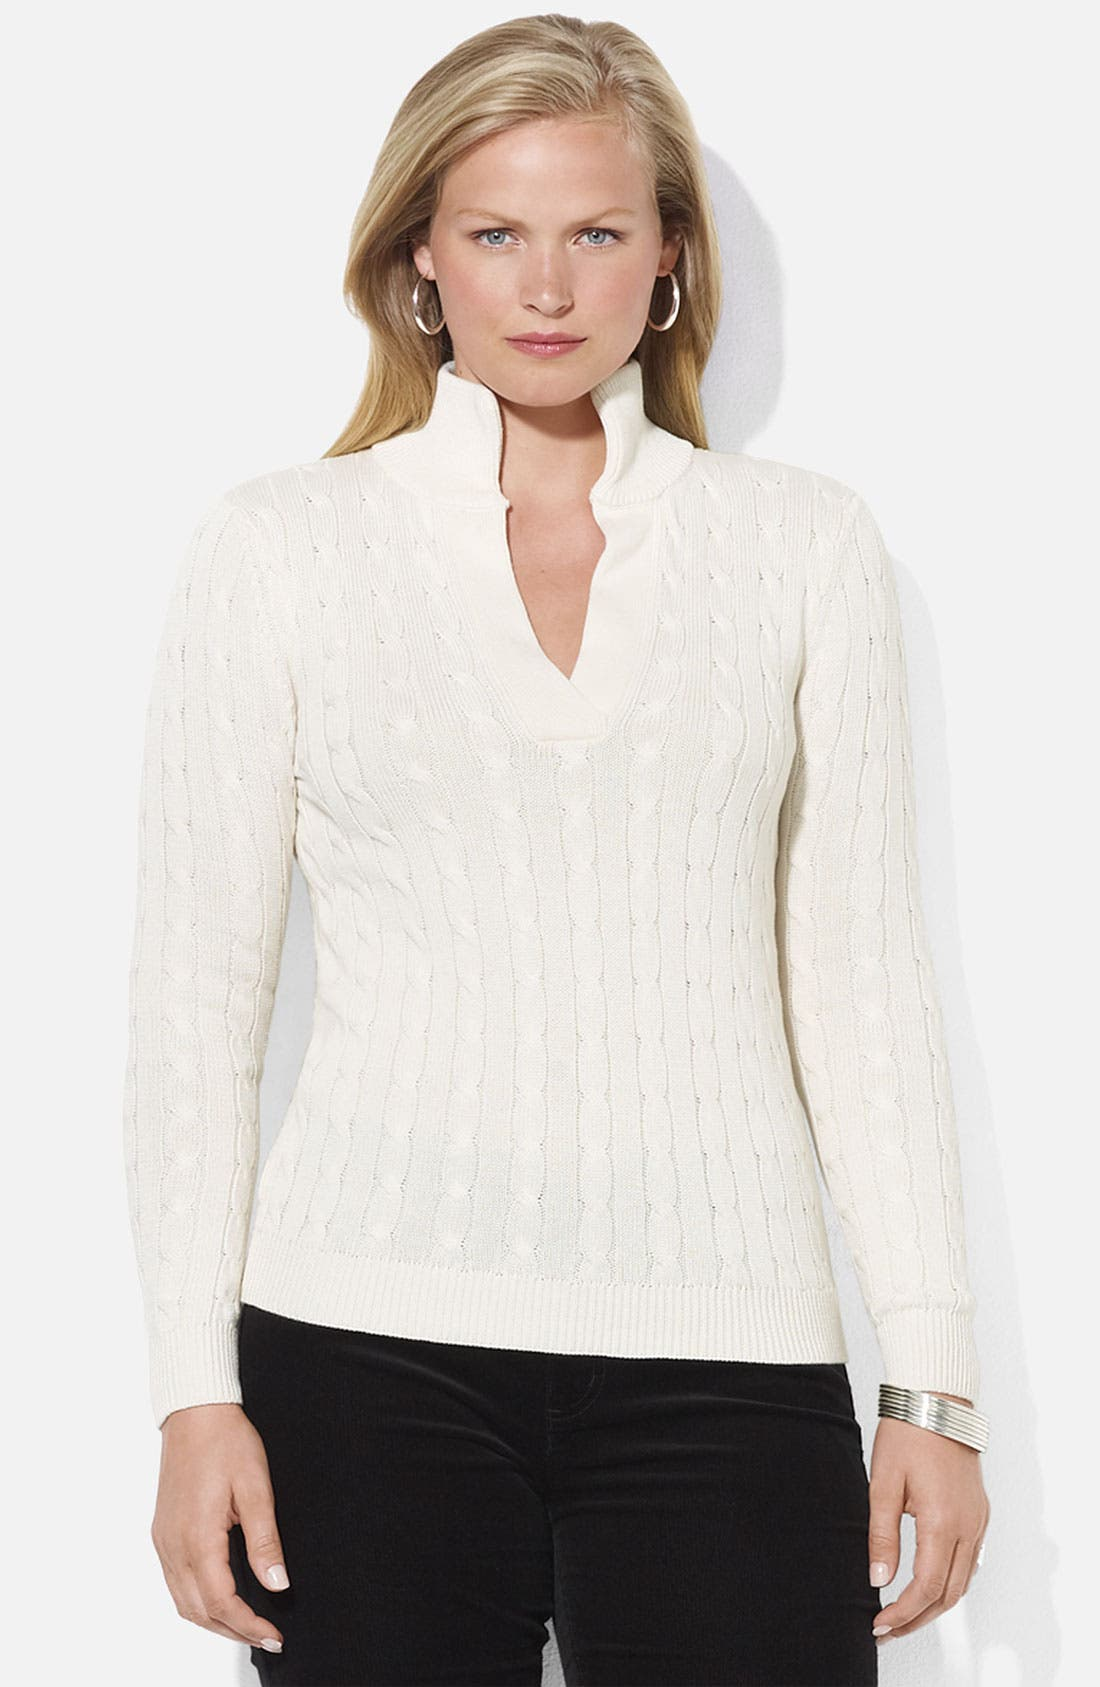 Alternate Image 1 Selected - Lauren Ralph Lauren Mock Neck Sweater (Plus)